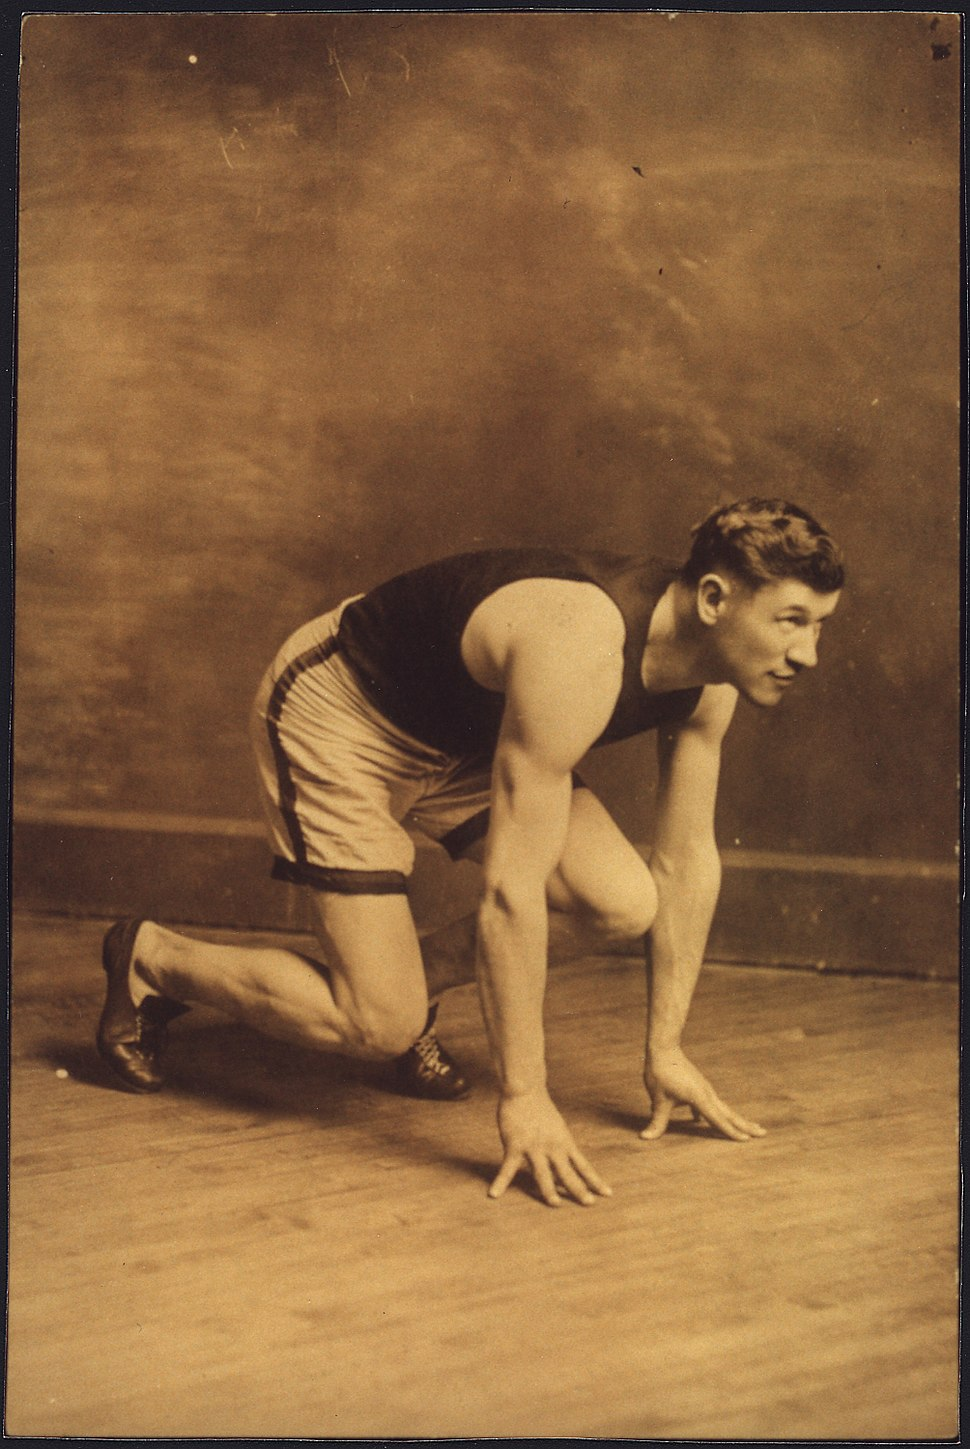 Photograph of Jim Thorpe - NARA - 595347